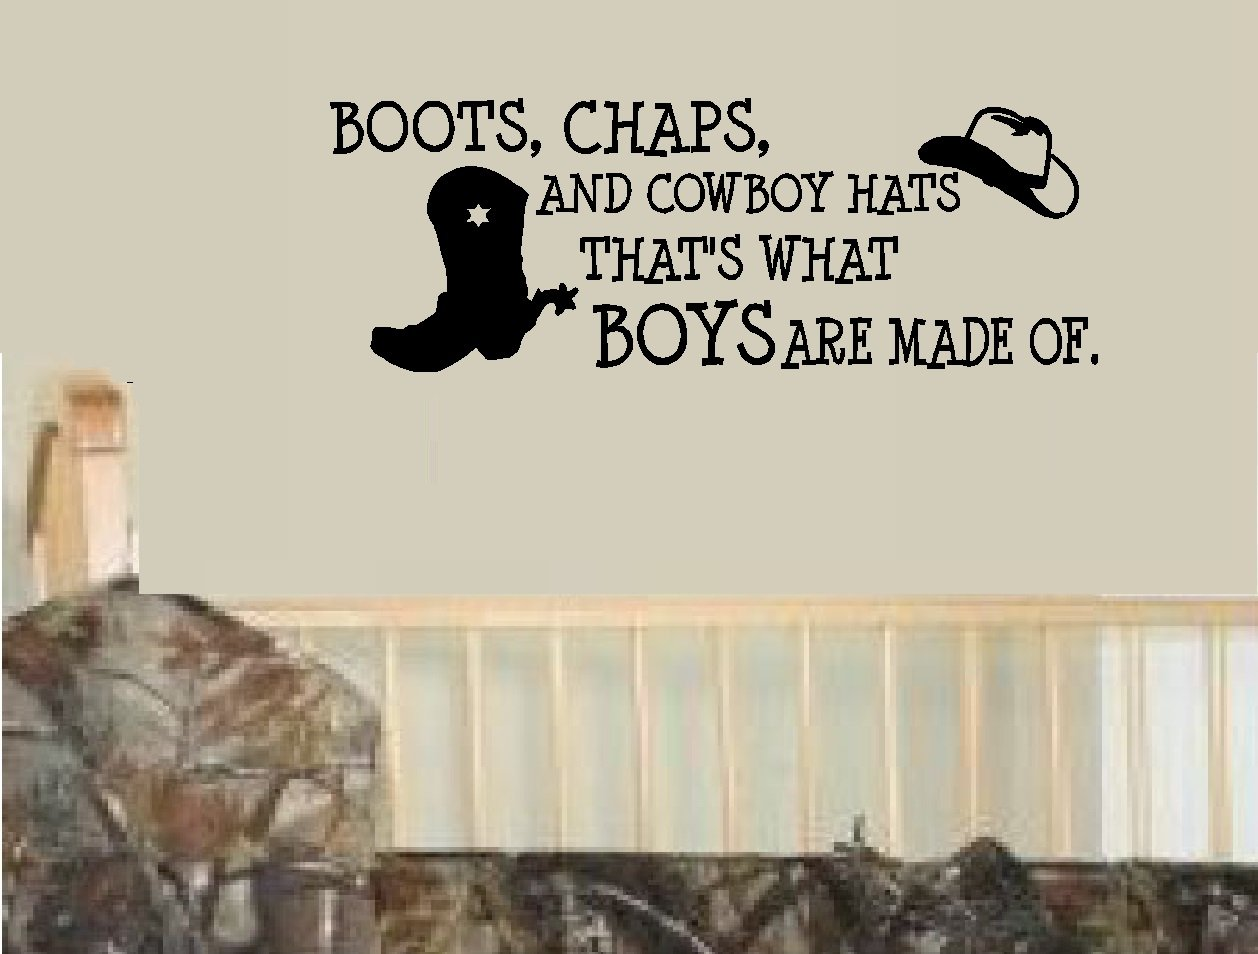 Amazon.com BOOTS CHAPS AND COWBOY HATS Thatu0027s what boys are made of #2 ~ WALL DECAL 10  X 28  Home u0026 Kitchen  sc 1 st  Amazon.com & Amazon.com: BOOTS CHAPS AND COWBOY HATS Thatu0027s what boys are made ...